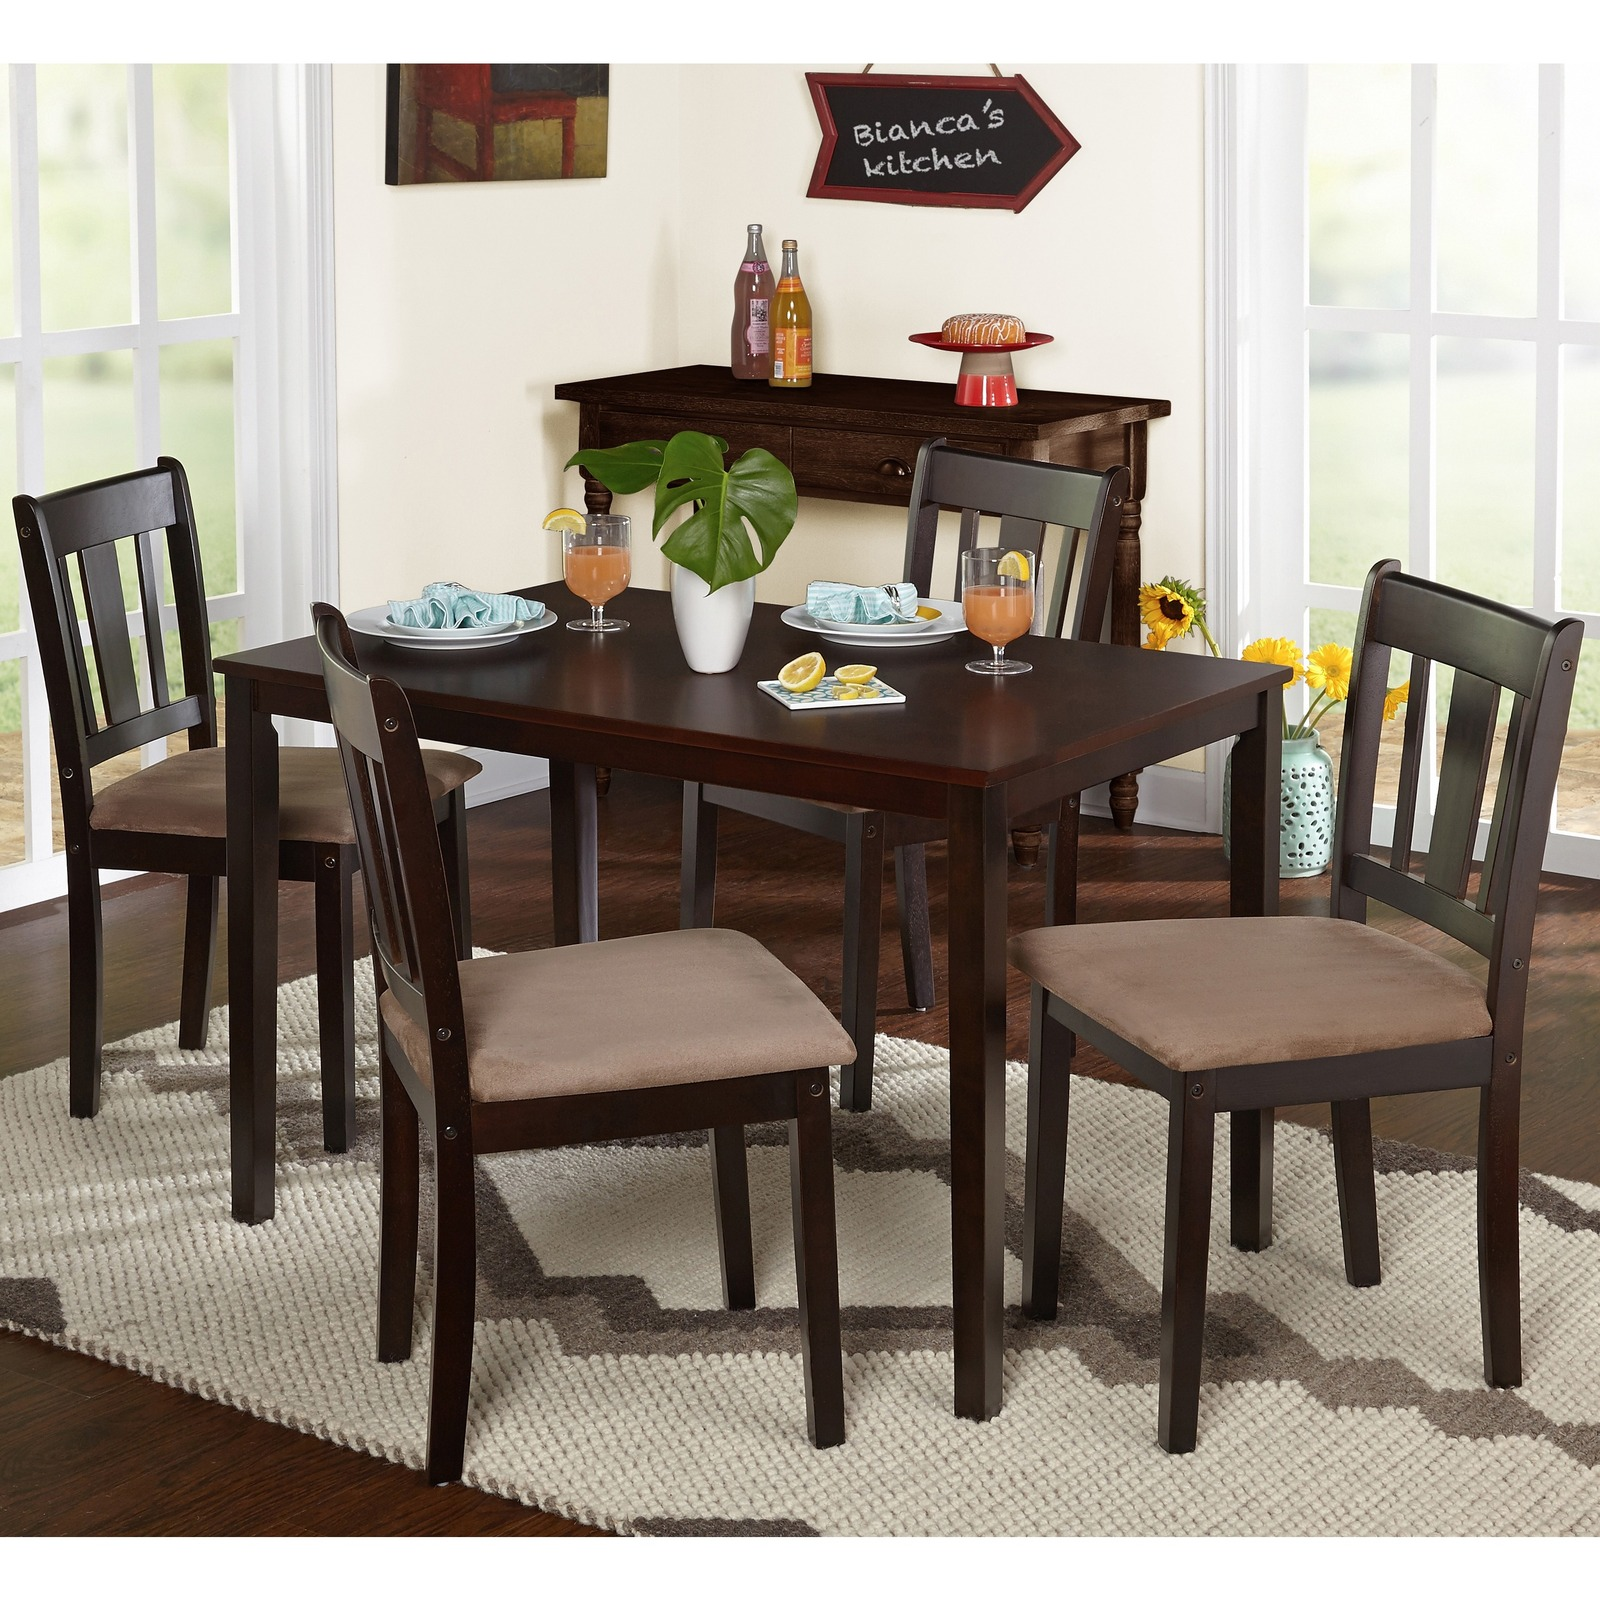 Set 5 Piece Dining Room Furniture Set Table Chairs Dining Sets